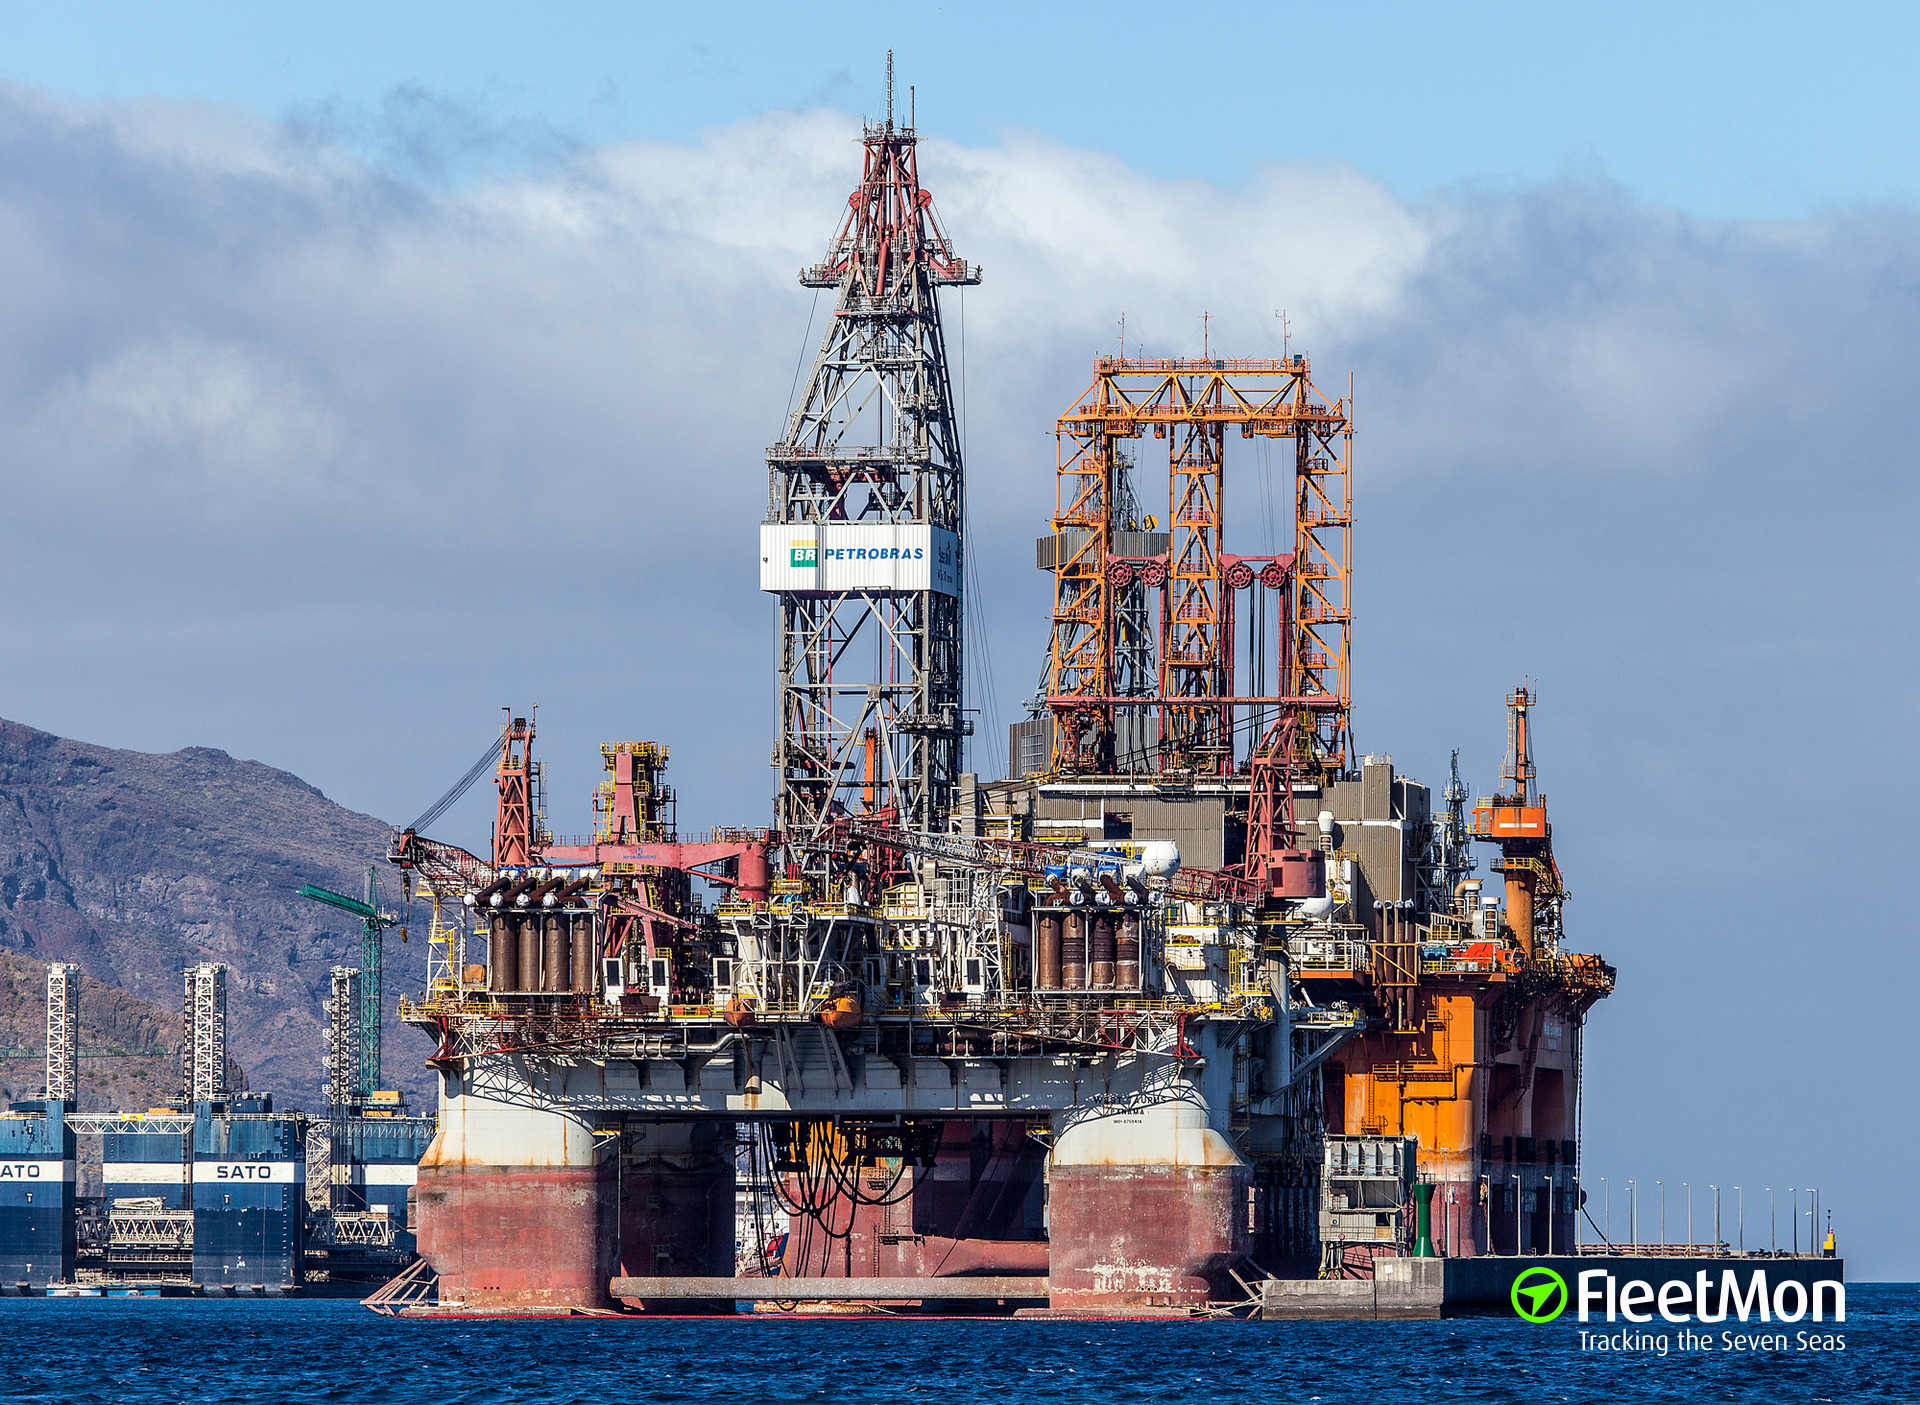 Drilling ship hit, badly damaged German container ship, Canary Islands